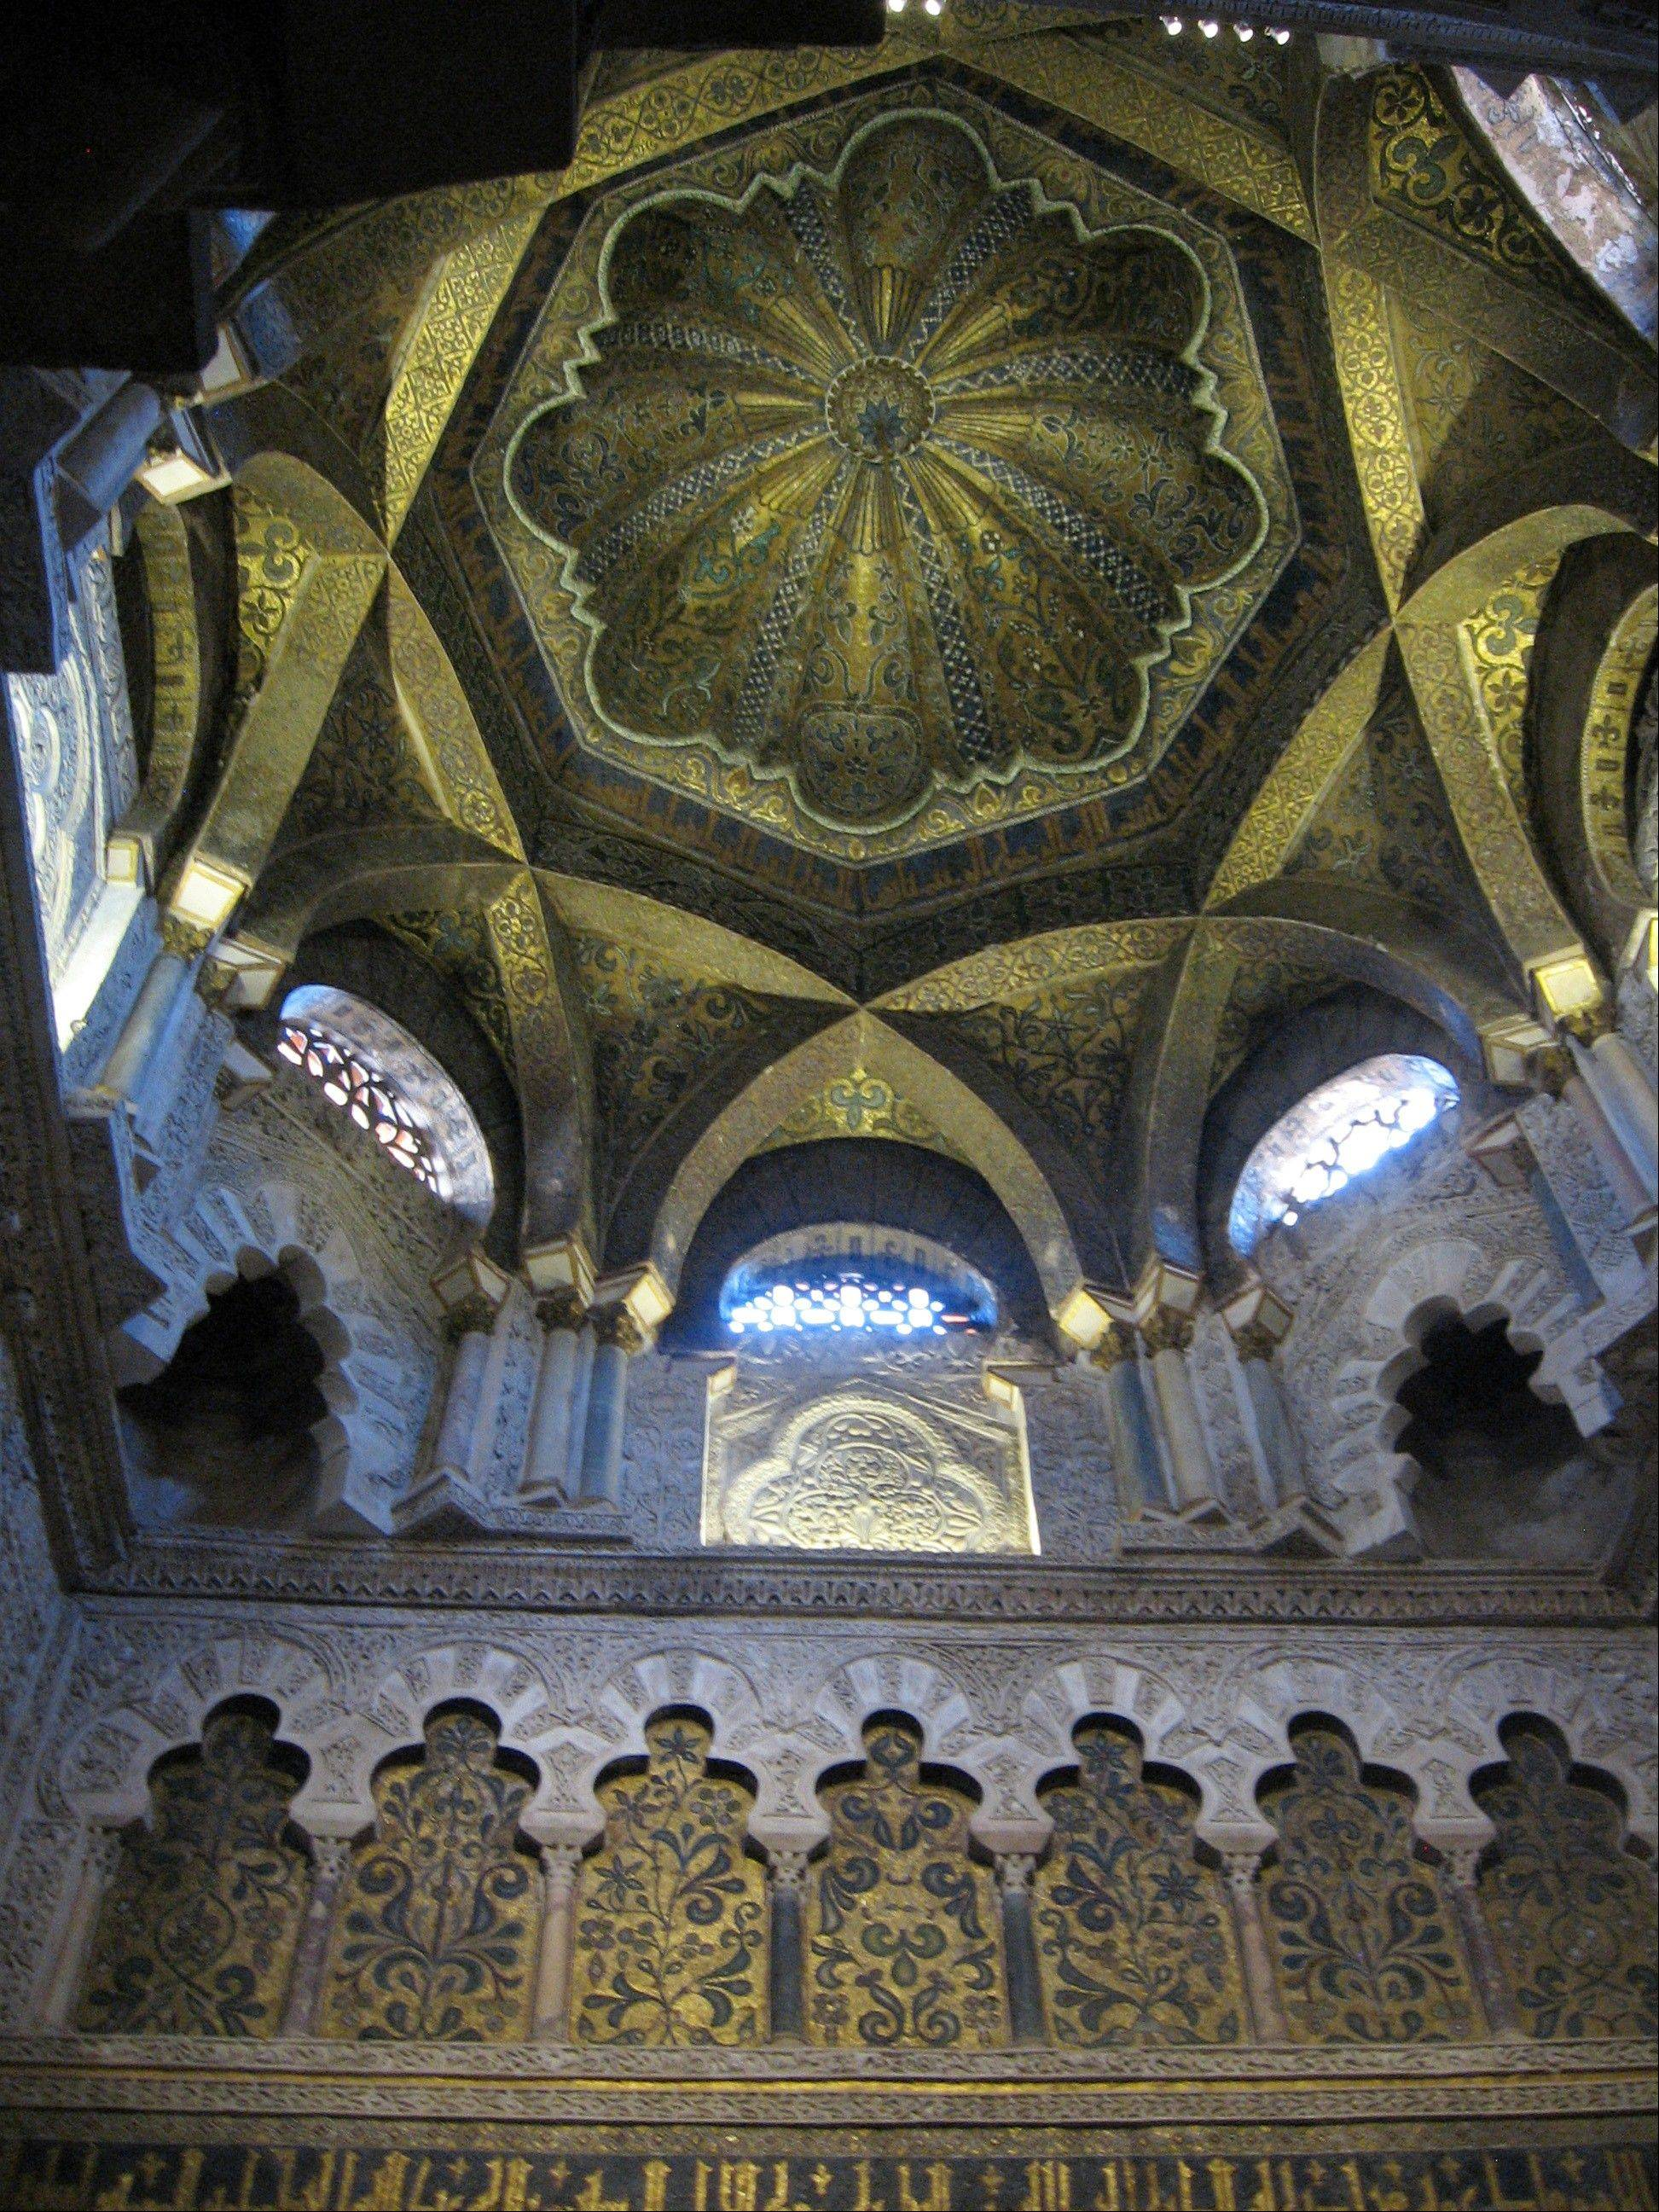 Mosaics cover a vault in the Mezquita, in Cordoba, in Andalusia, Spain, now the city's cathedral, which originated as a mosque when the city was the center of Islamic Europe a thousand years ago.